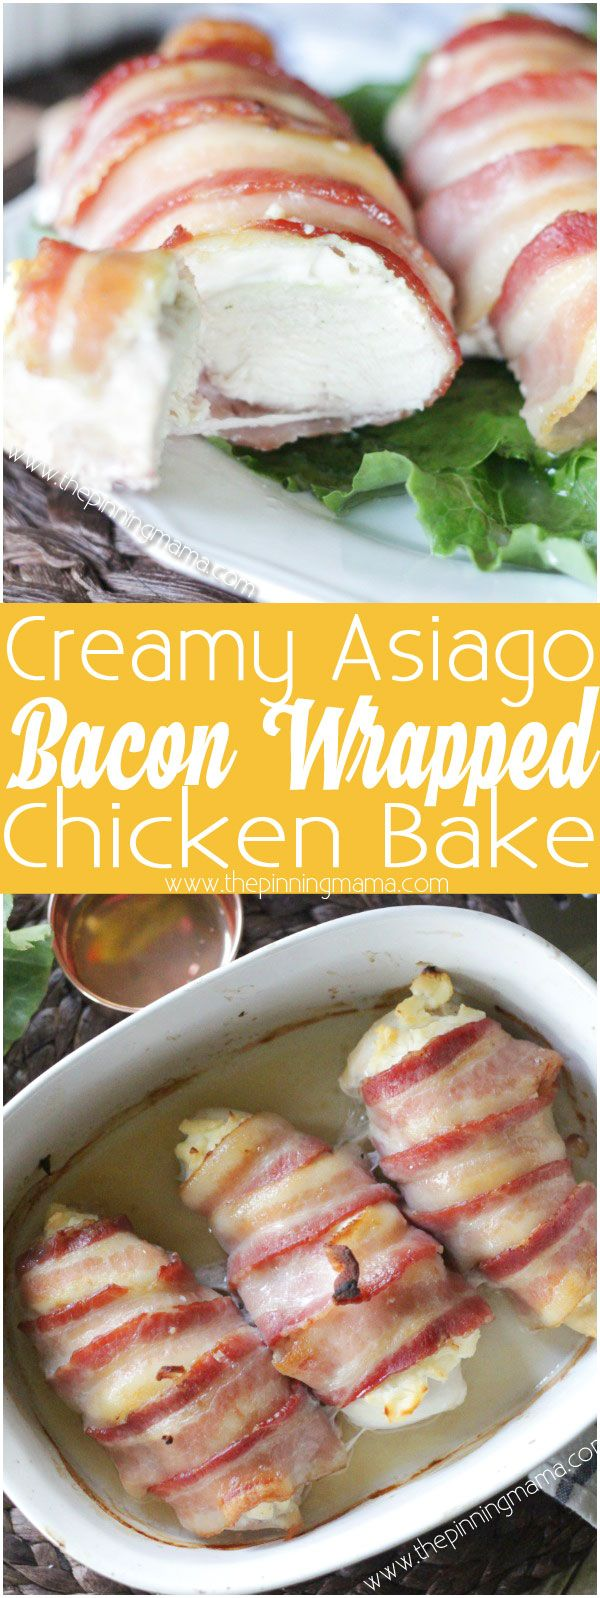 Bacon Wrapped Creamy Asiago Chicken Bake - Flavors of creamy asiago cheese and juicy chicken breast wrapped up in bacon. Does it get any better than this?! YUM!